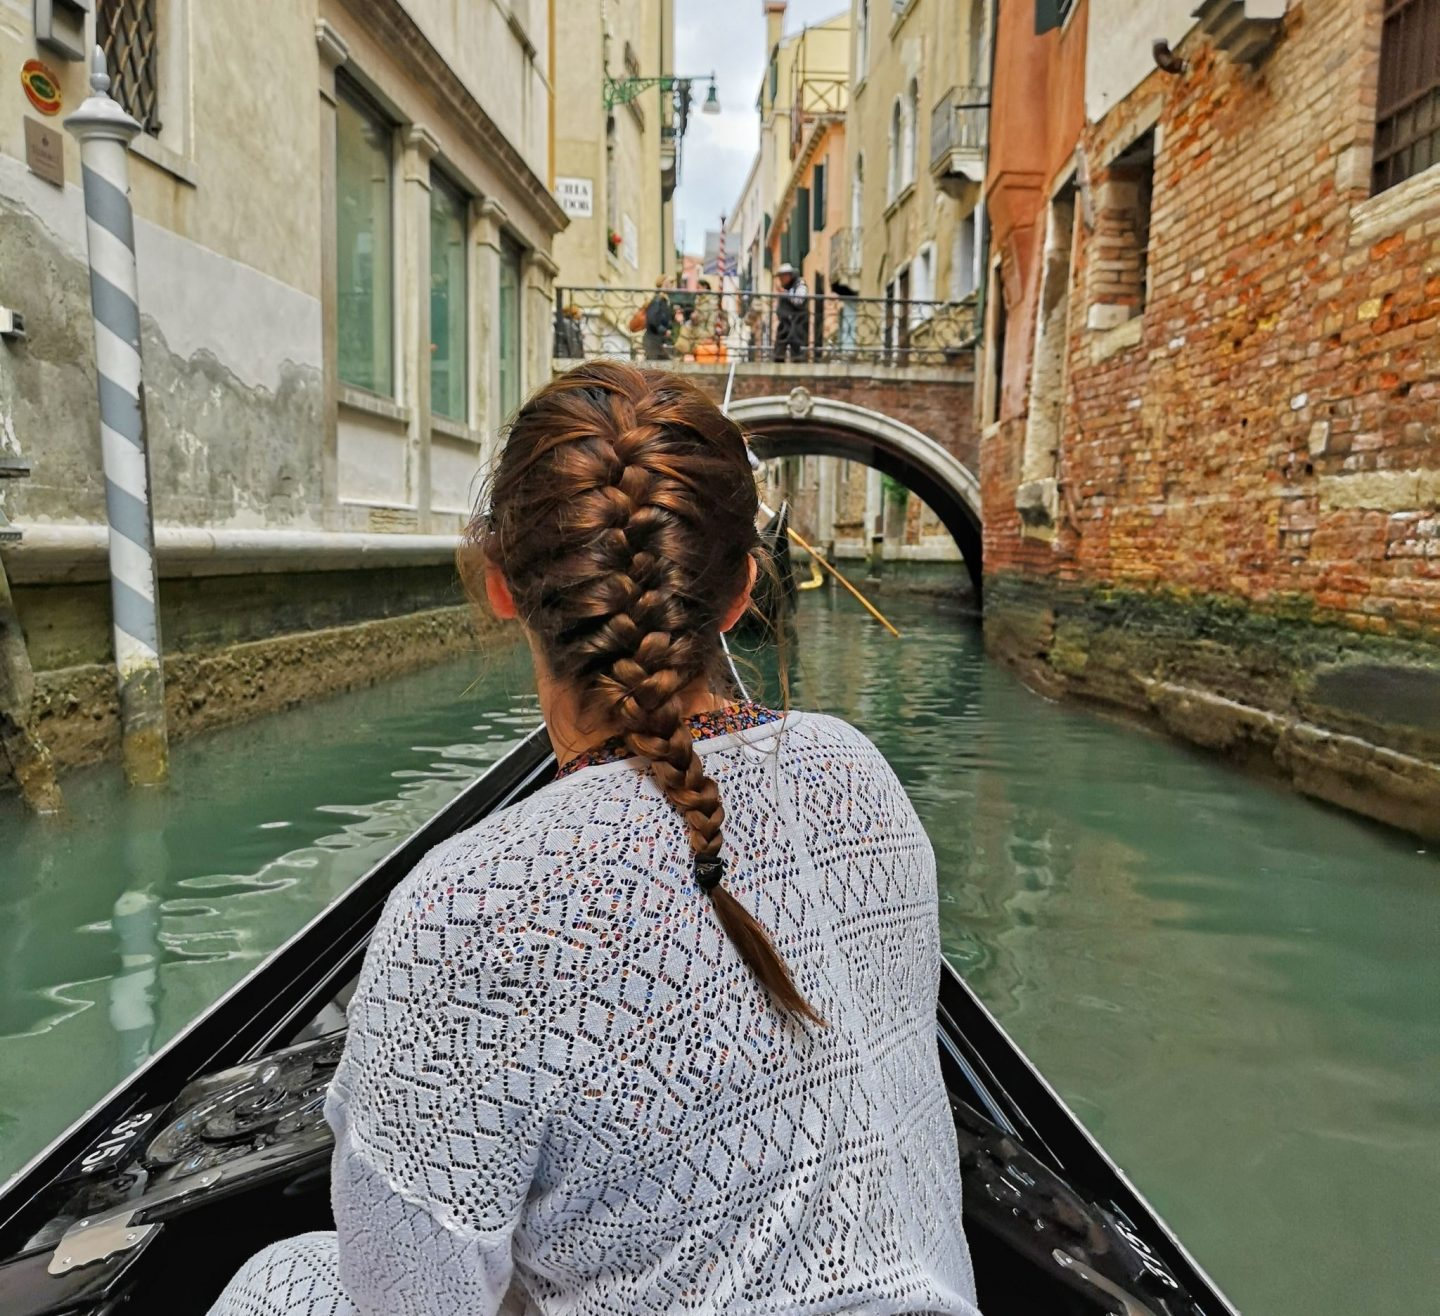 24 Hours in Venice, Italy - New Shades of Hippy. Gondola ride in Venice, Italy